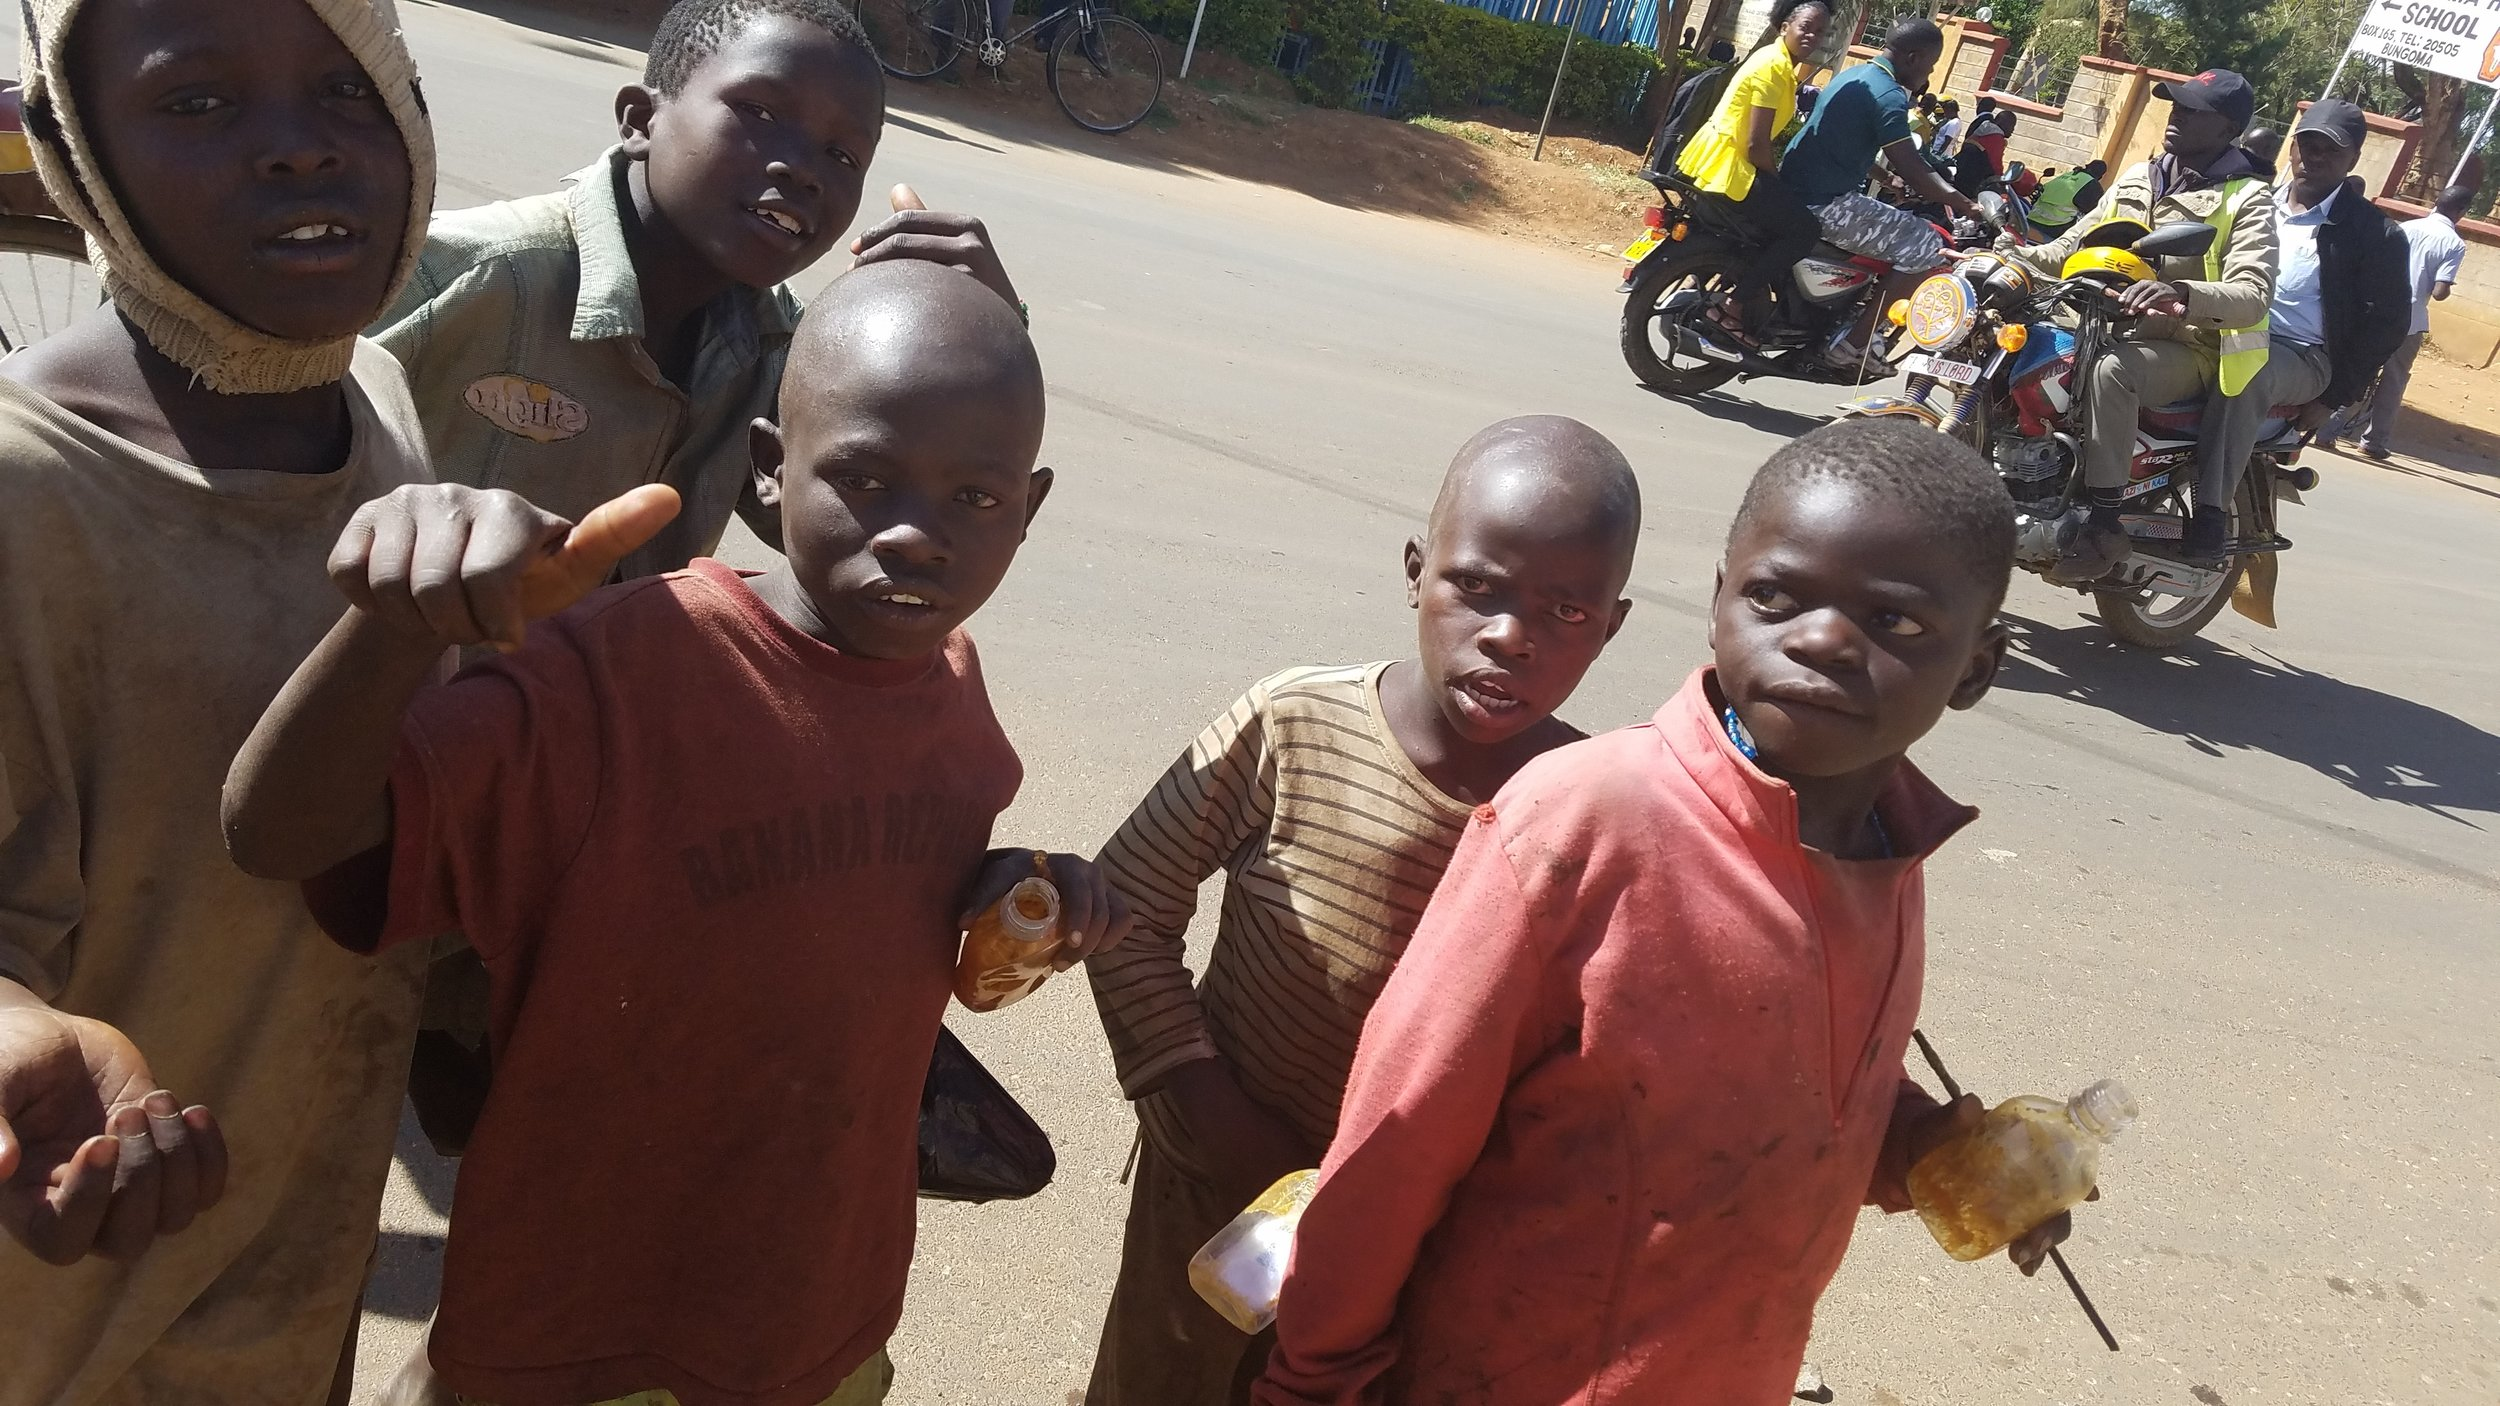 Eugene (second from right) and the other 4 boys on that day in December 2016.